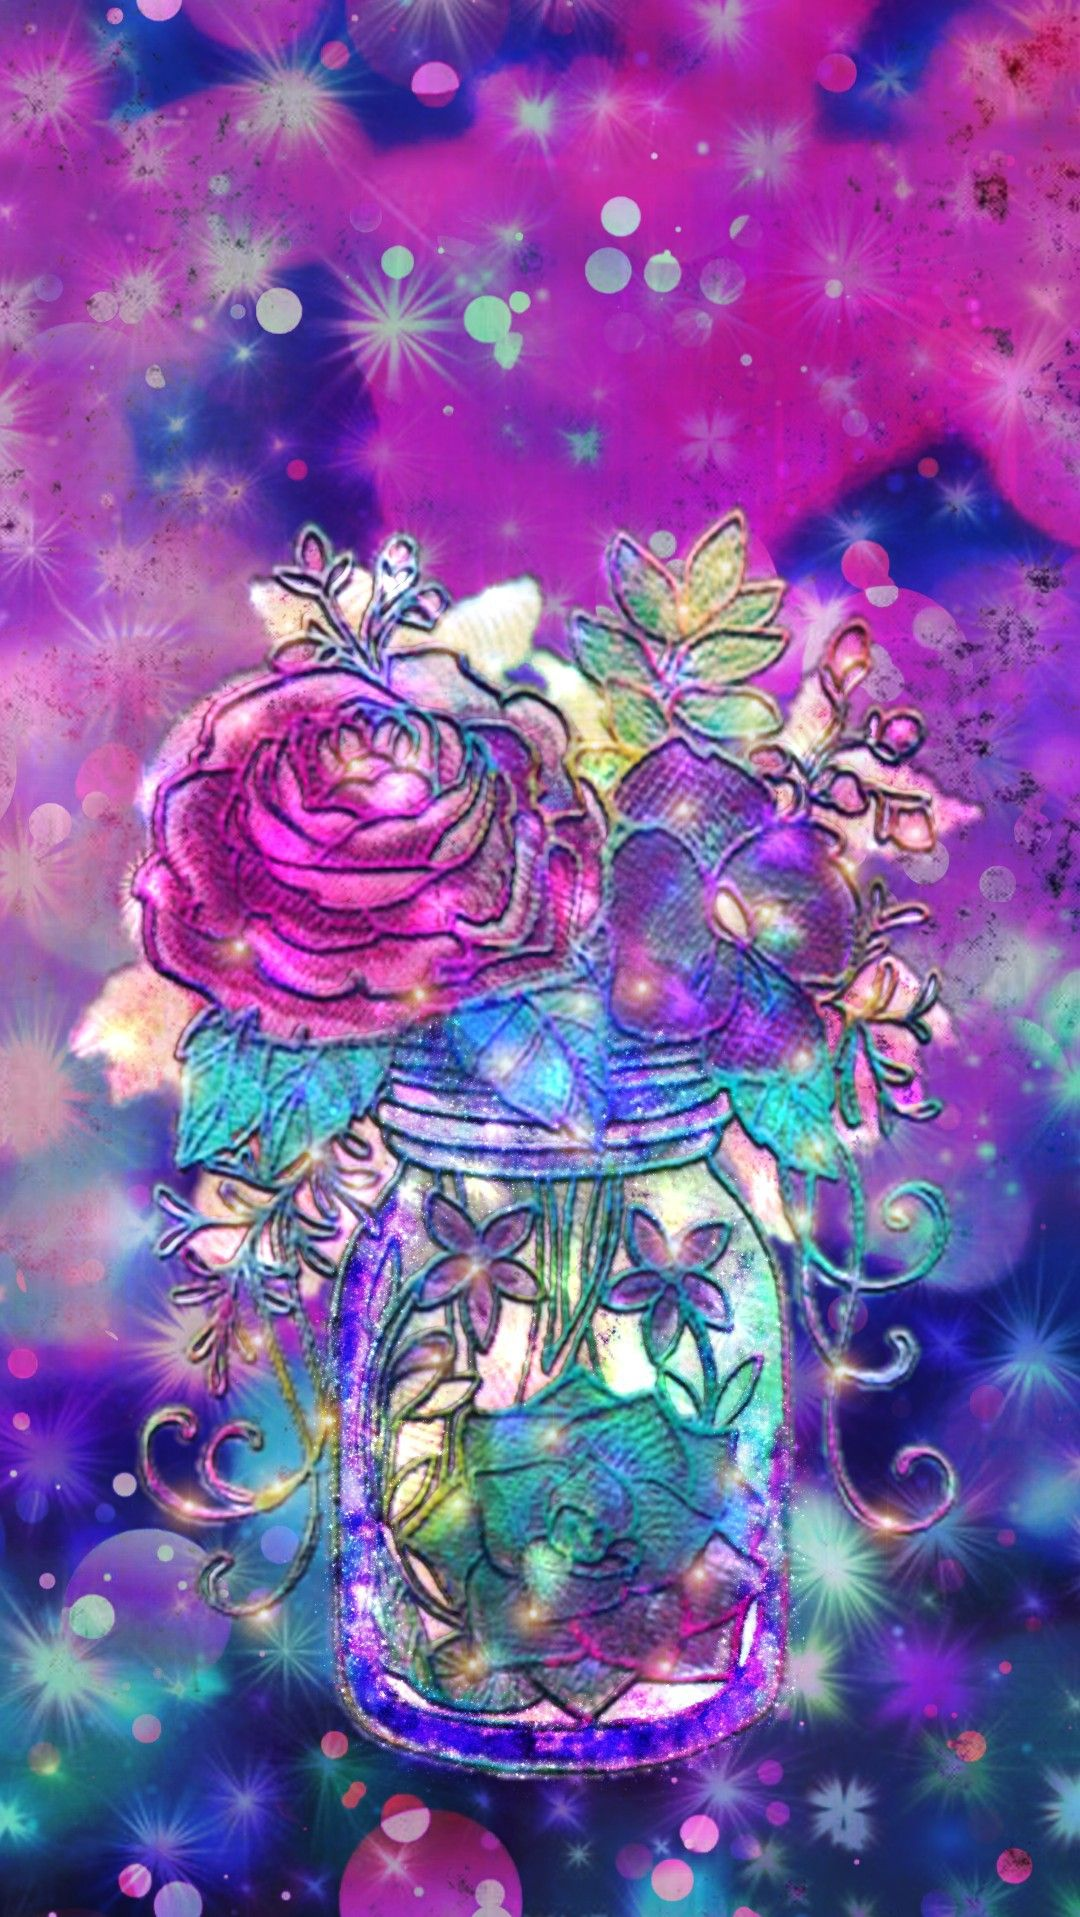 Twinkling Flower Jar Made By Me Purple Sparkly Wallpapers Backgrounds Glitter Colorful Cool Backgrounds Wallpapers Glitter Wallpaper Glitter Background